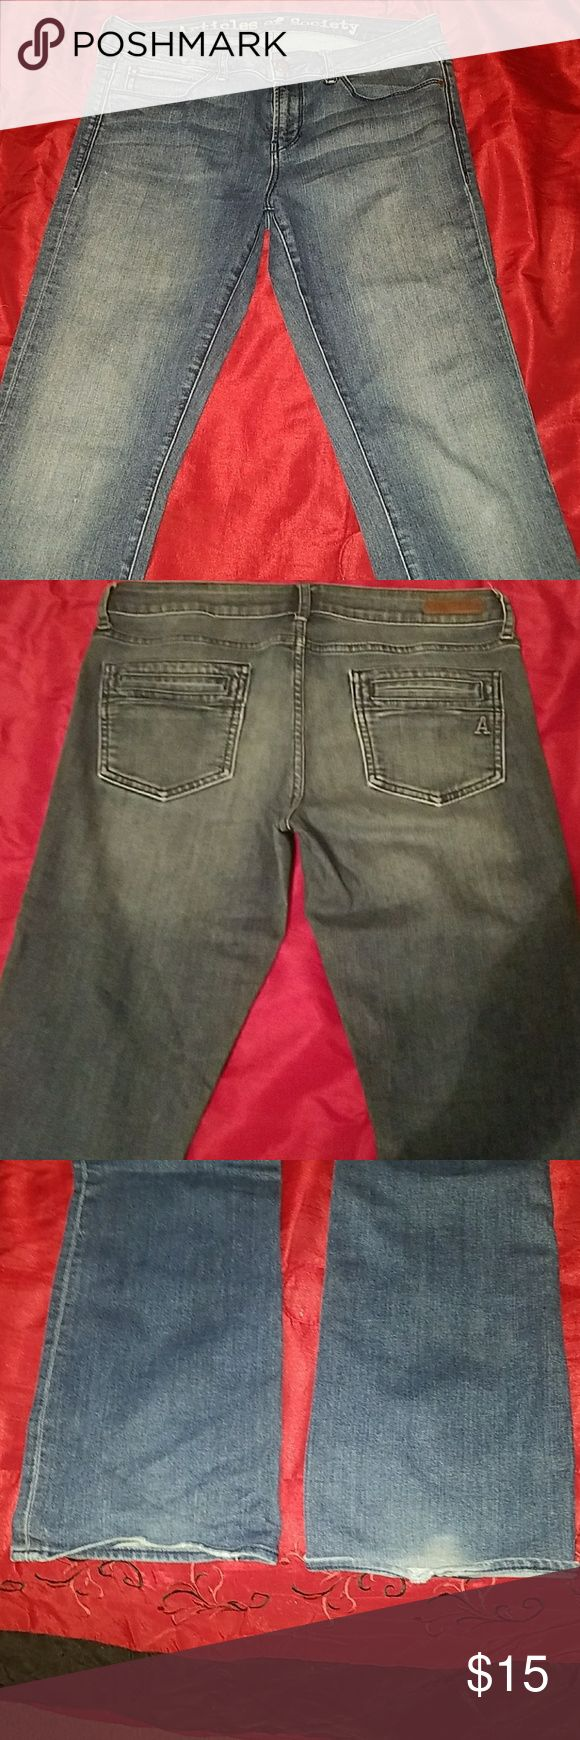 """Articles of Society jeans I don't know much about this brand. These were bought from another Posher. These jeans are so soft, but I'm too curvy for this style. See last picture for signs of wear, but otherwise great condition. Rise 8"""", inseam 32"""" Articles Of Society Jeans Boot Cut"""